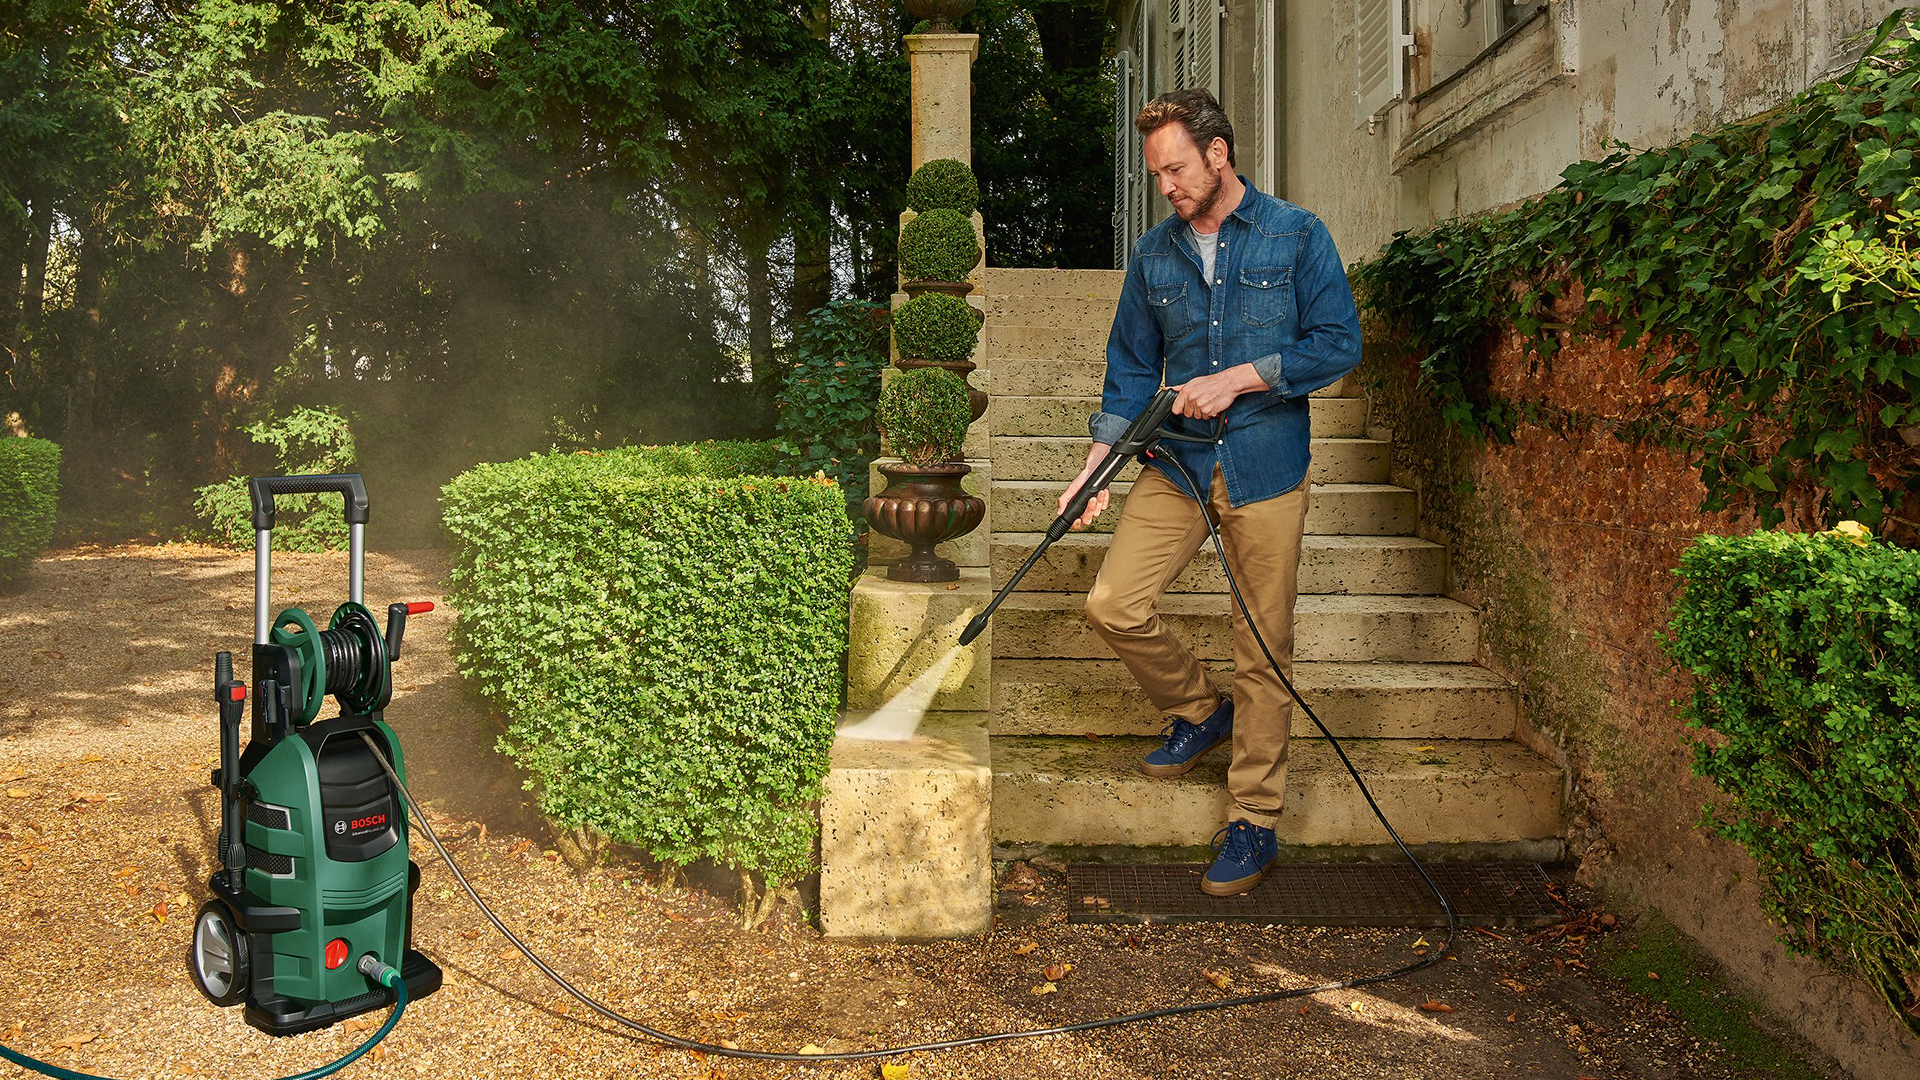 Complete High Pressure Washer System From Bosch Media Service Aquatak Aqt33 11 Will Be Offering A Of Washers For Efficient Cleaning Around The Home And Garden In Addition To Handy Easy Class